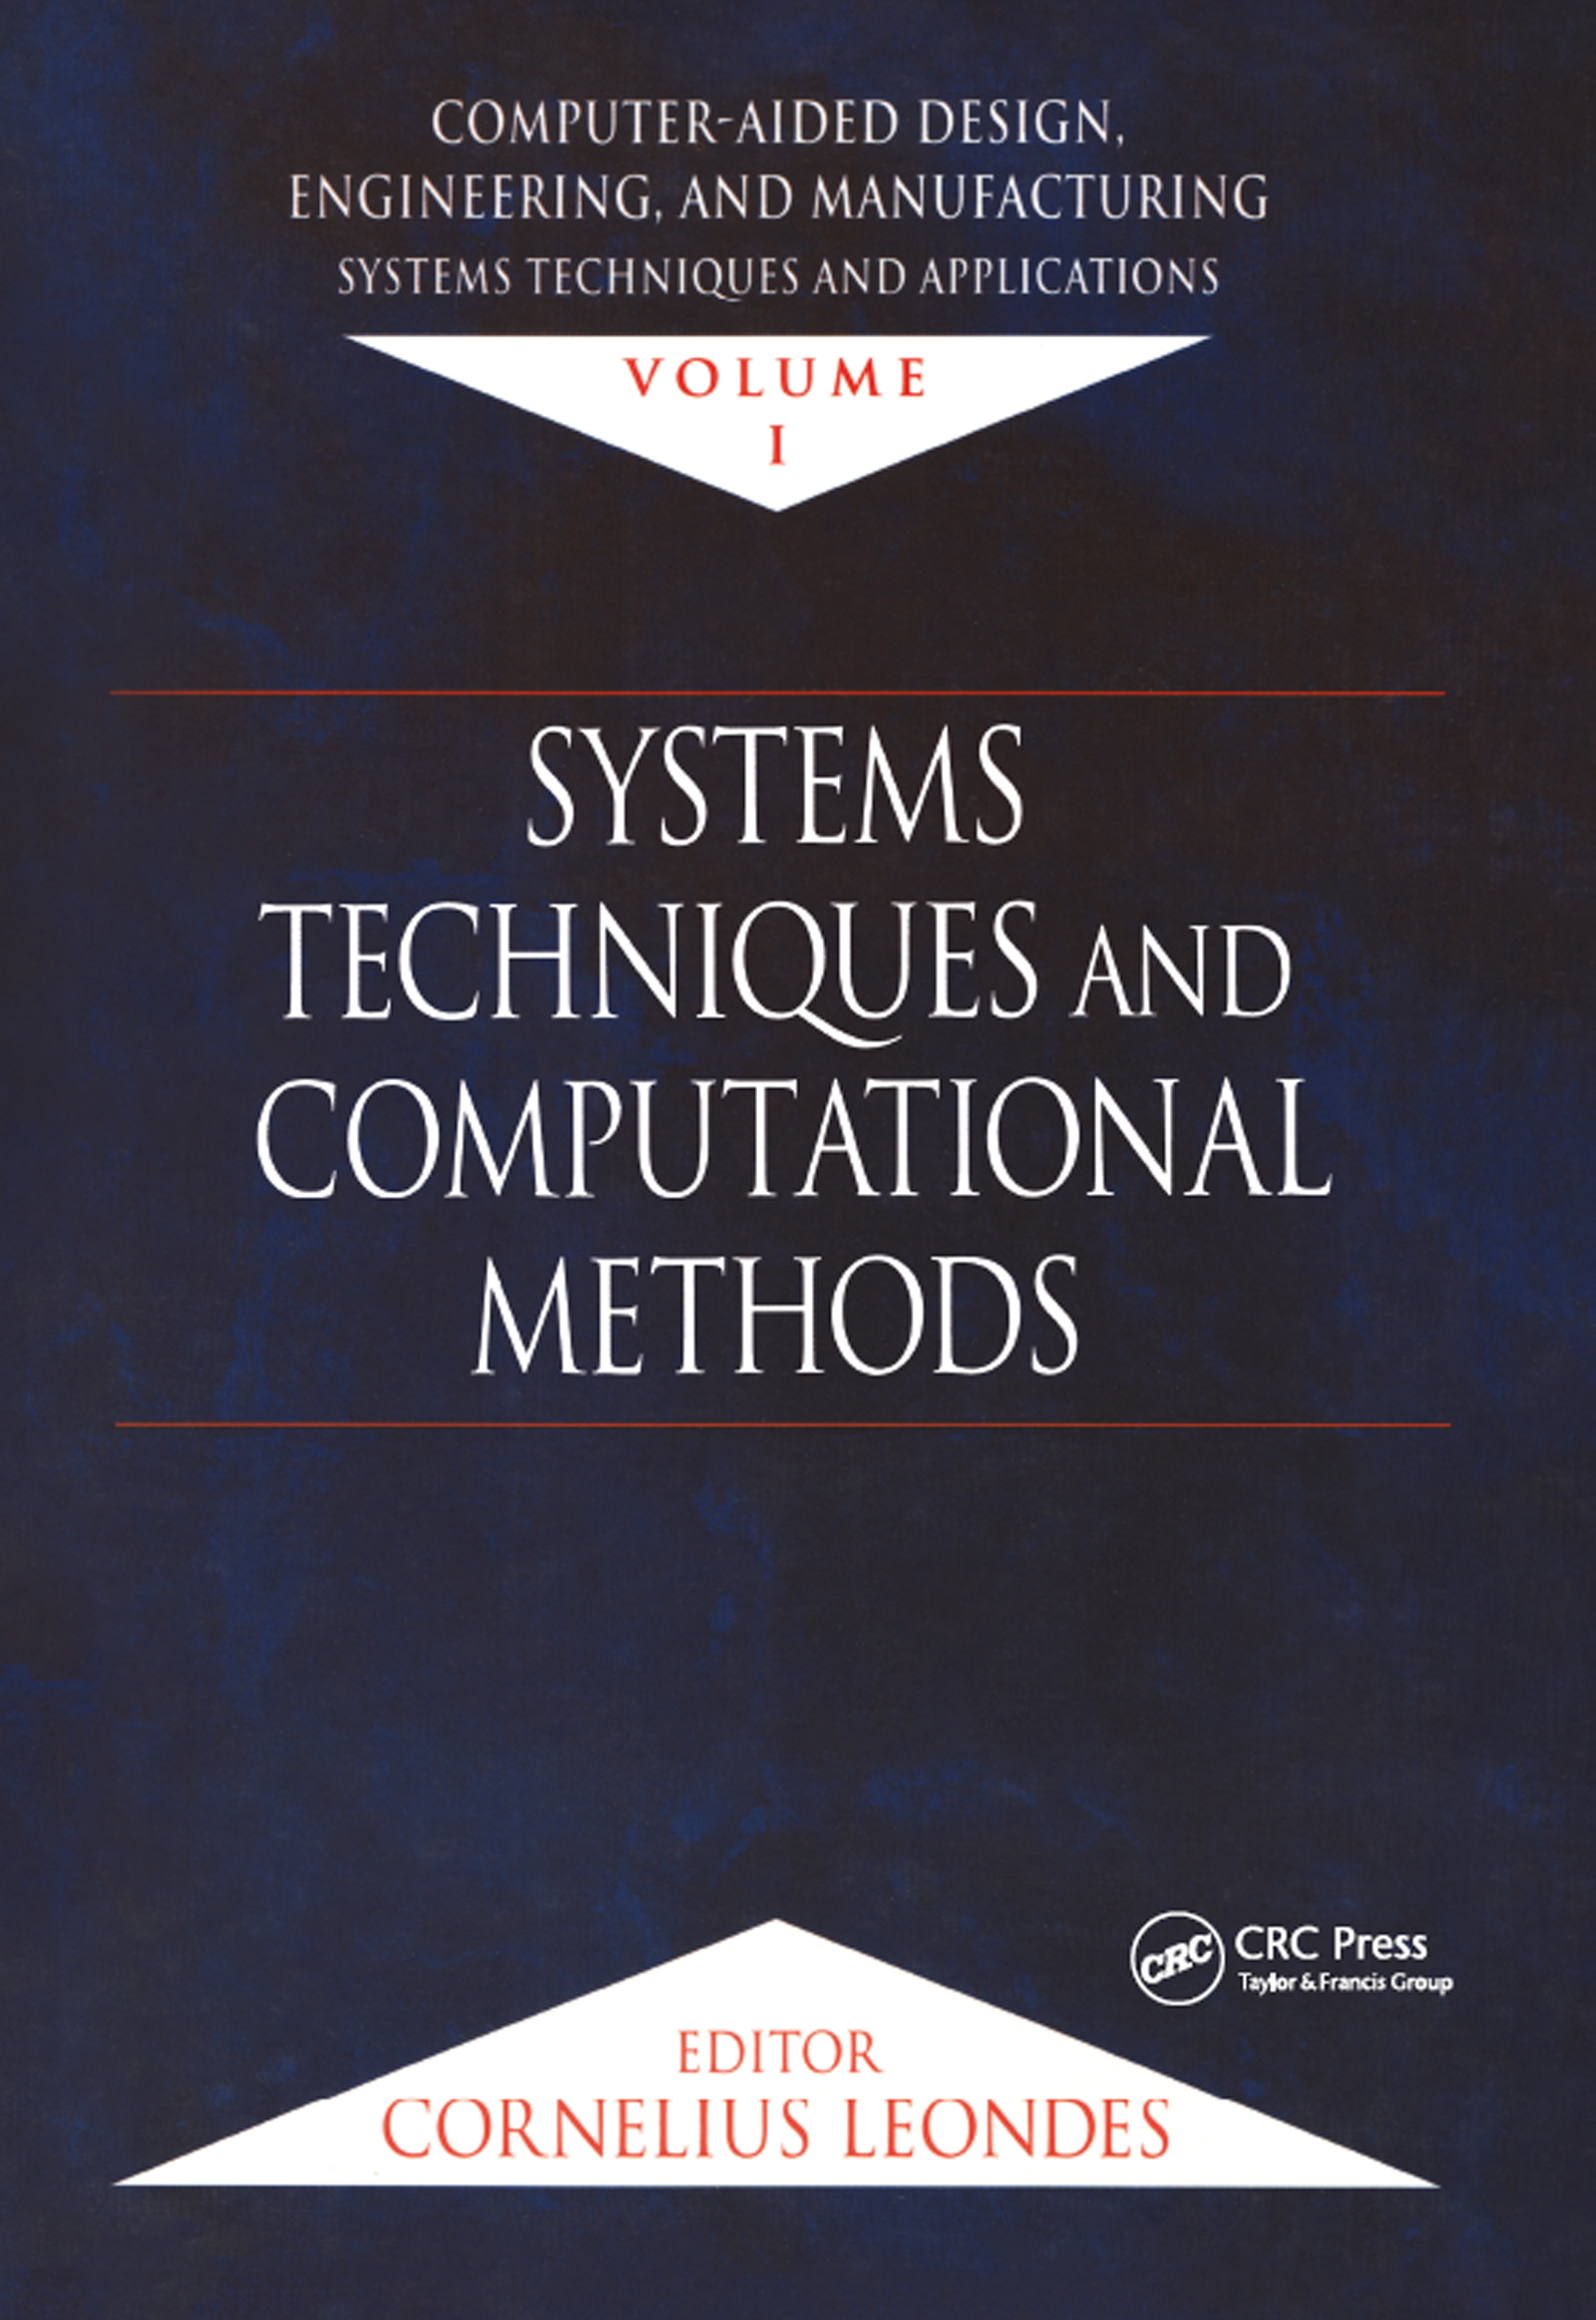 Computer-Aided Design, Engineering, and Manufacturing: Systems Techniques and Applications, Volume I, Systems Techniques and Computational Methods, 1st Edition (Hardback) book cover